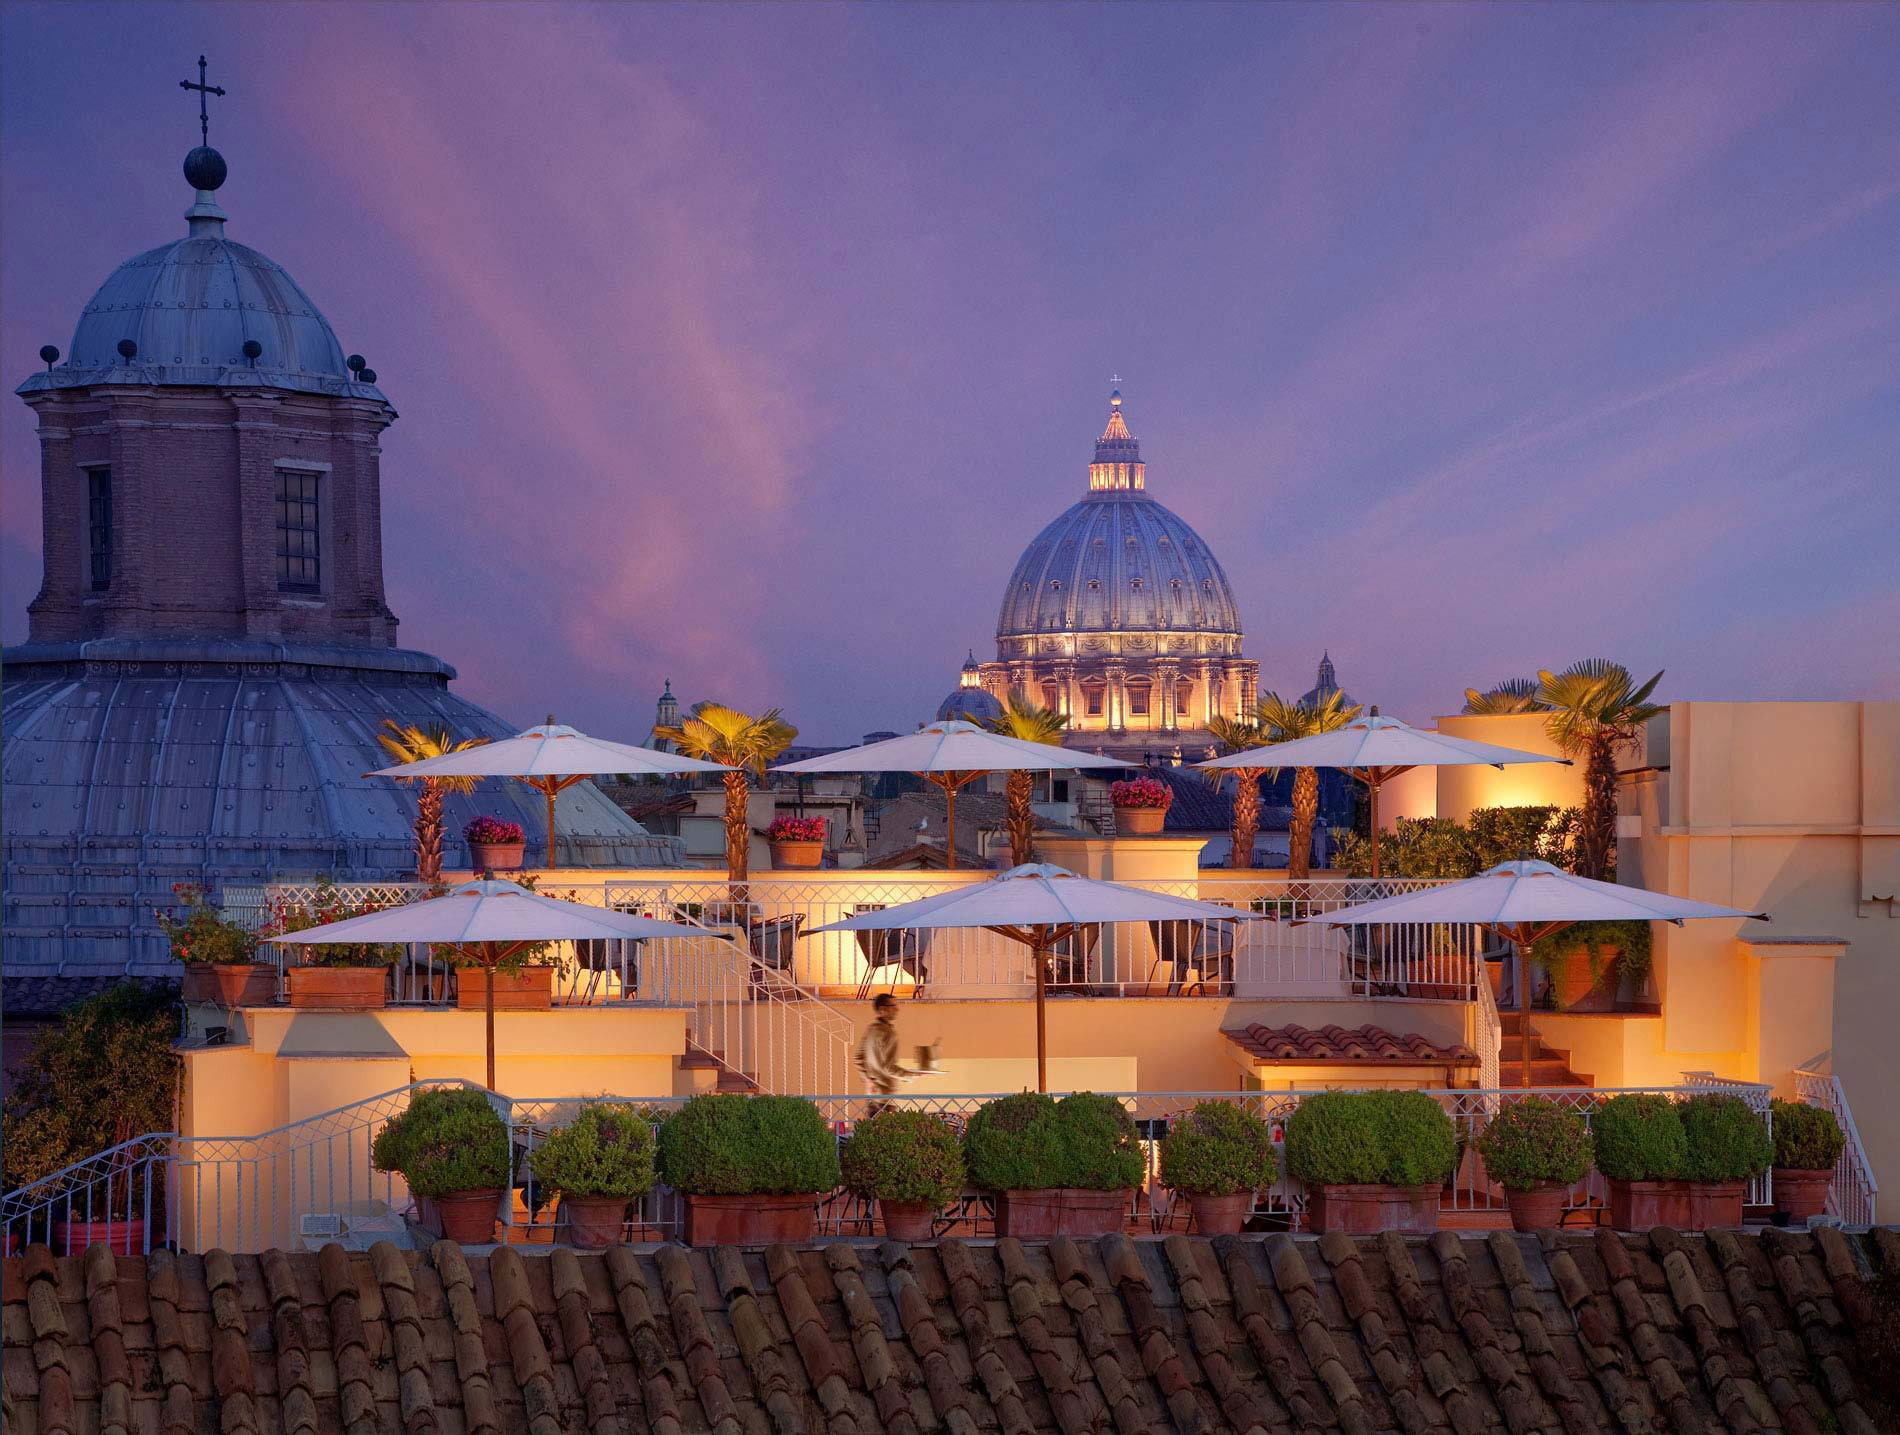 Hotel Raphaël, Rome. All images courtesy of the hotels